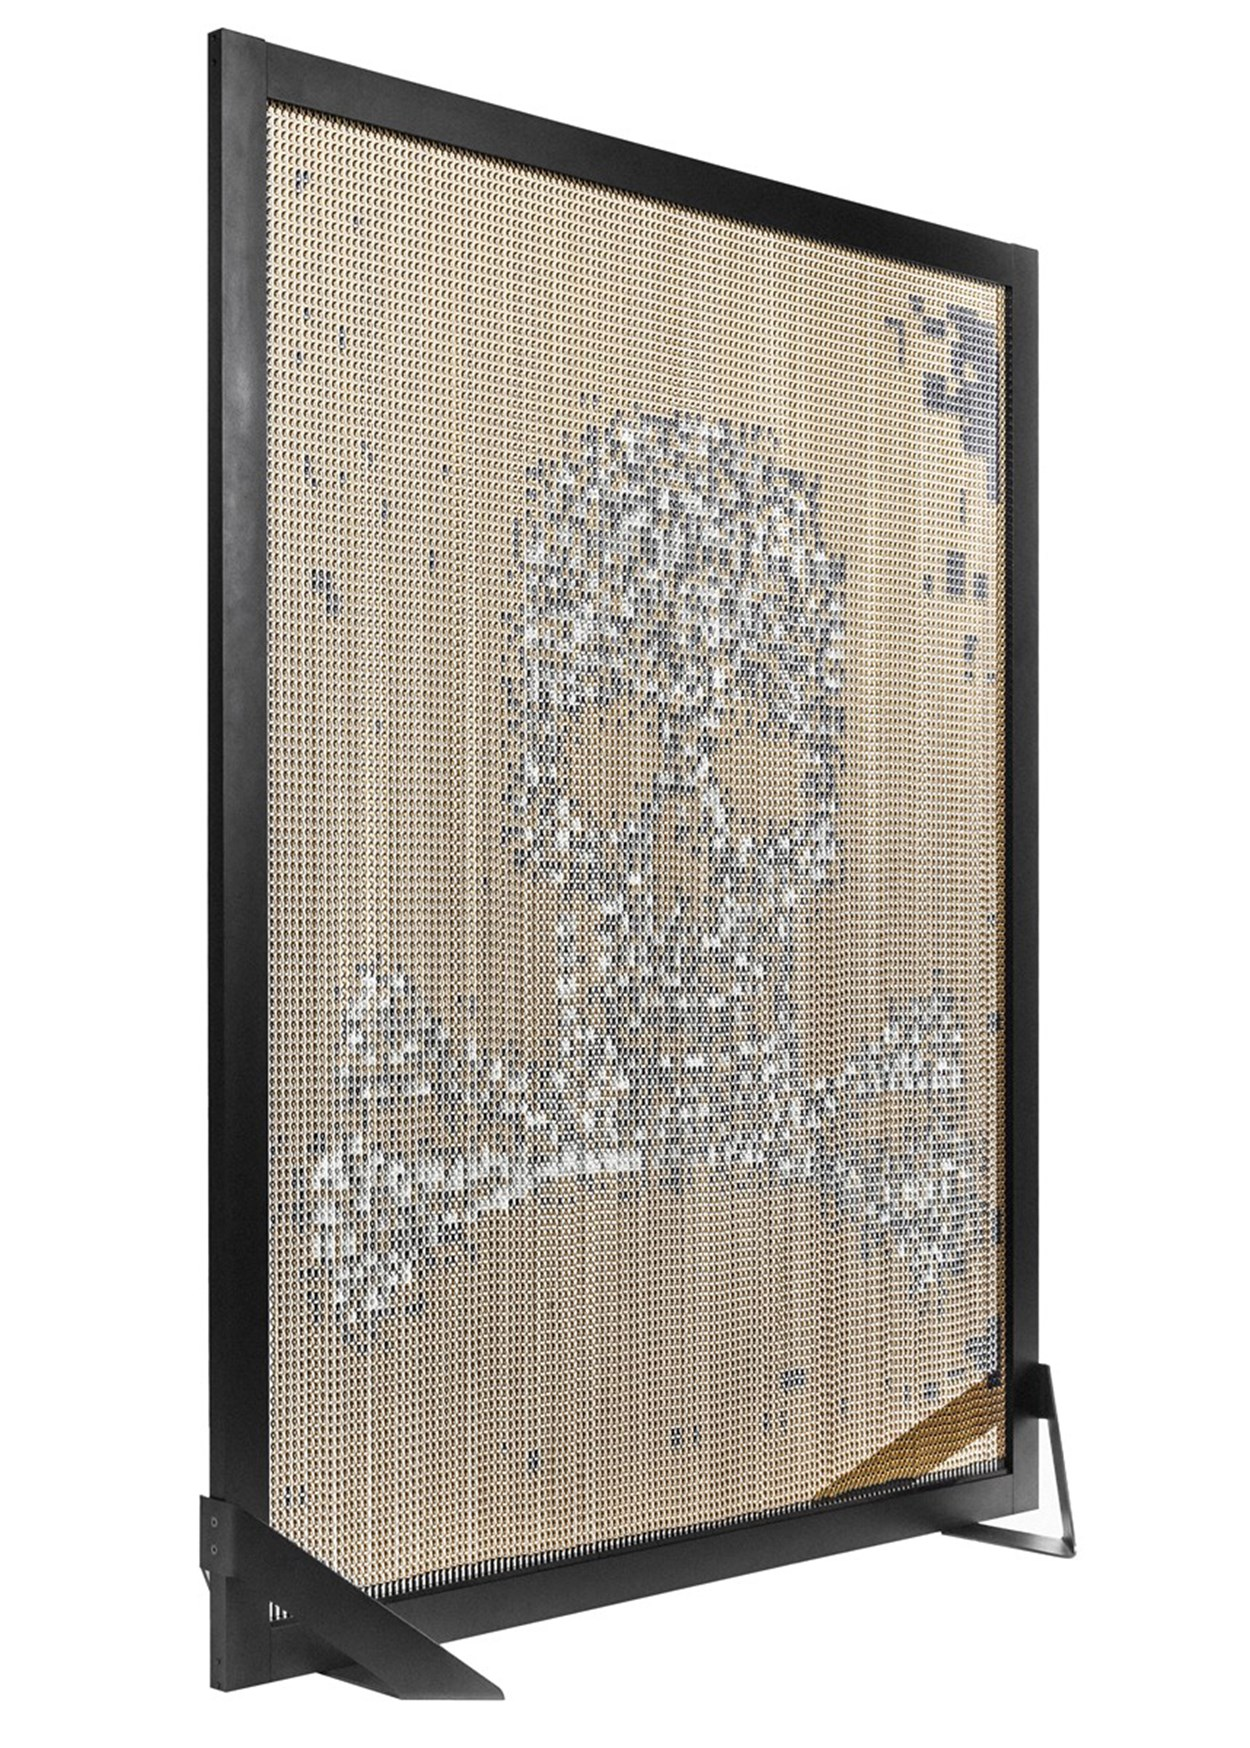 kriskadecor-Barcelona-Screen-Divider- Skull L black.jpg